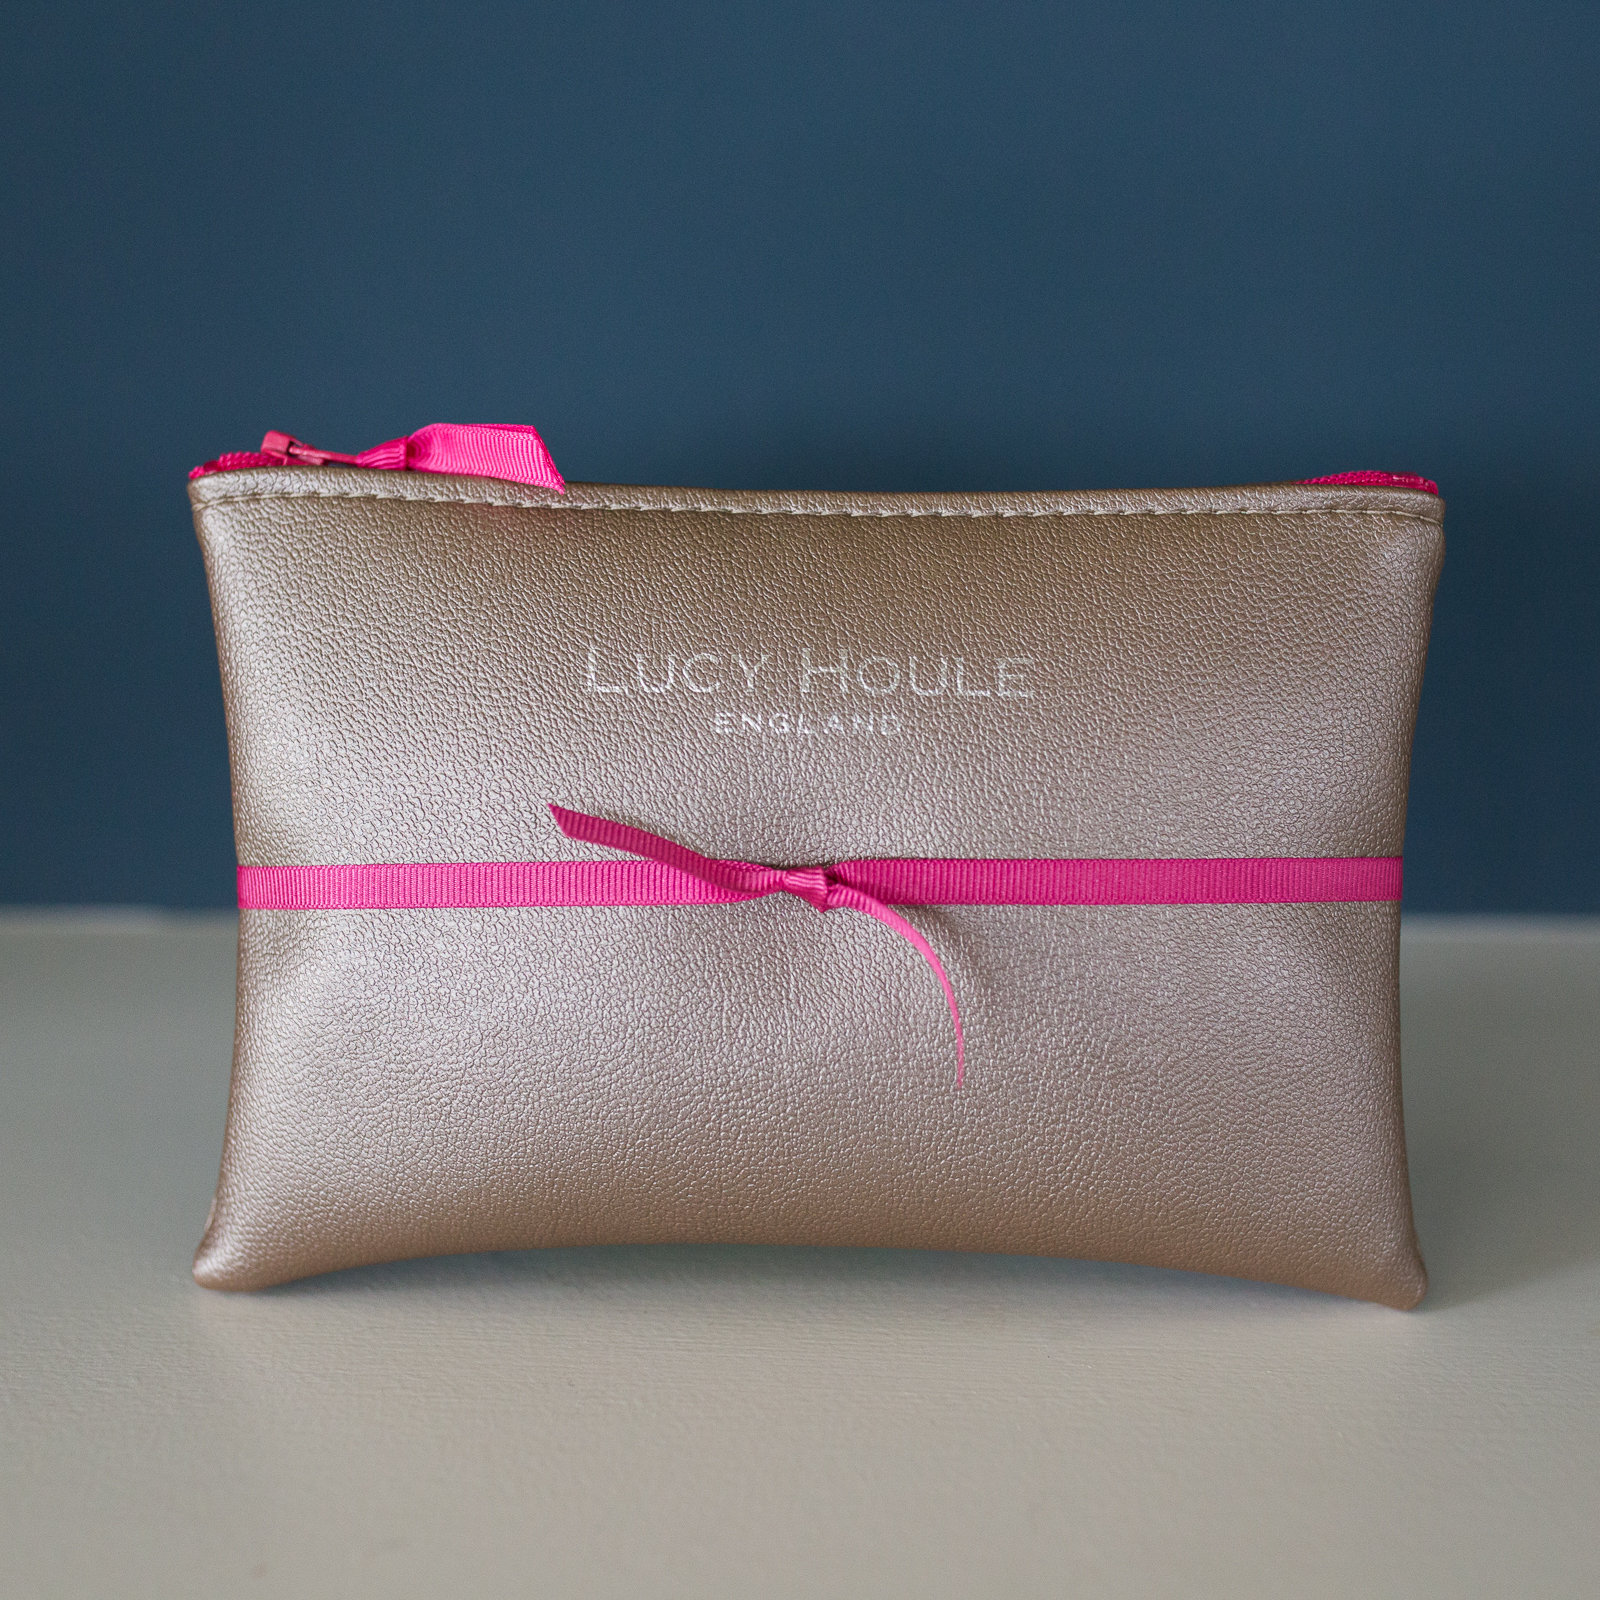 Faux Leather Silver Purse with Pink Zip